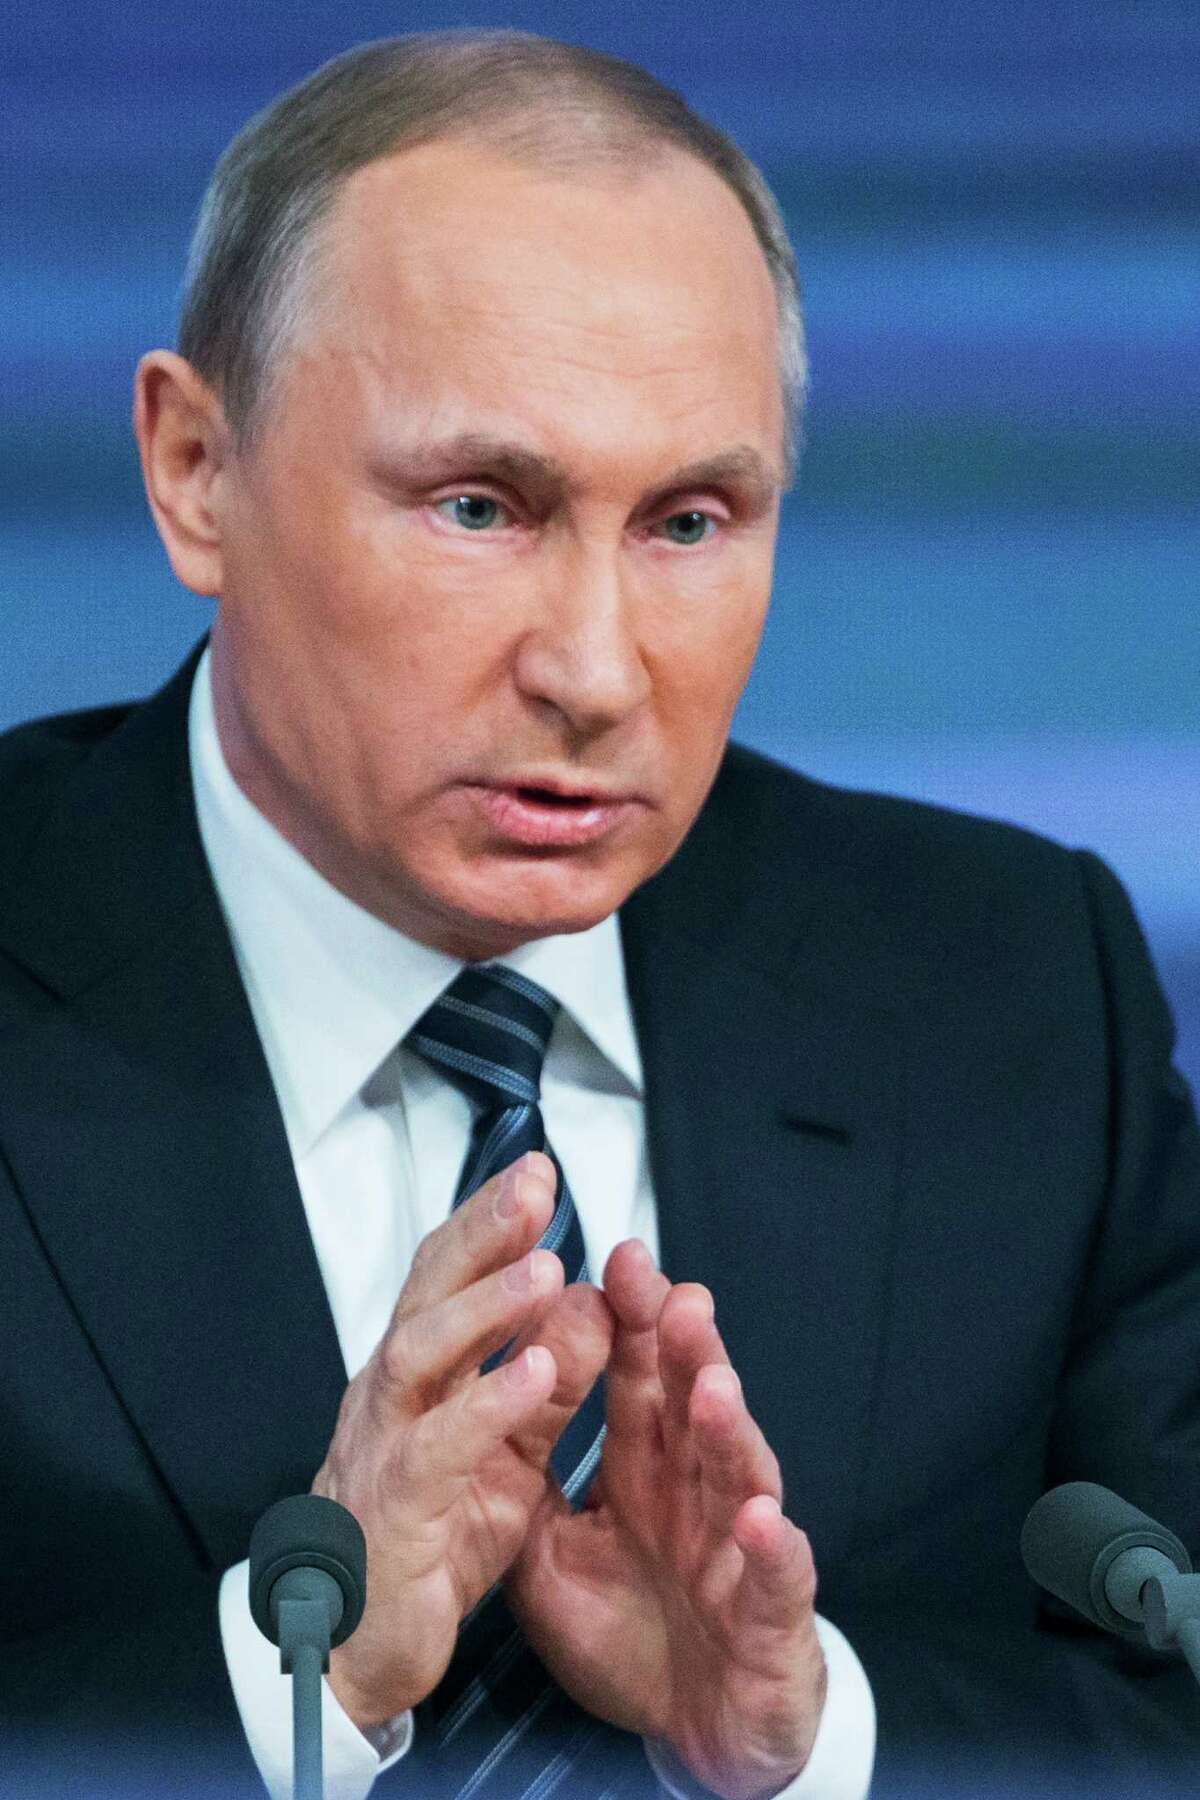 Russian President Vladimir Putin gestures during his annual news conference in Moscow, Russia, Thursday, Dec. 17, 2015. Putin says that Russia's economy is showing signs of stabilization despite plummeting oil prices. Putin, speaking Thursday at a news conference televised live, said that despite a GDP drop caused by a drop in global oil prices, Russia's main commodity, the nation's industries have started to rebound. (AP Photo/Alexander Zemlianichenko) ORG XMIT: XPAG106